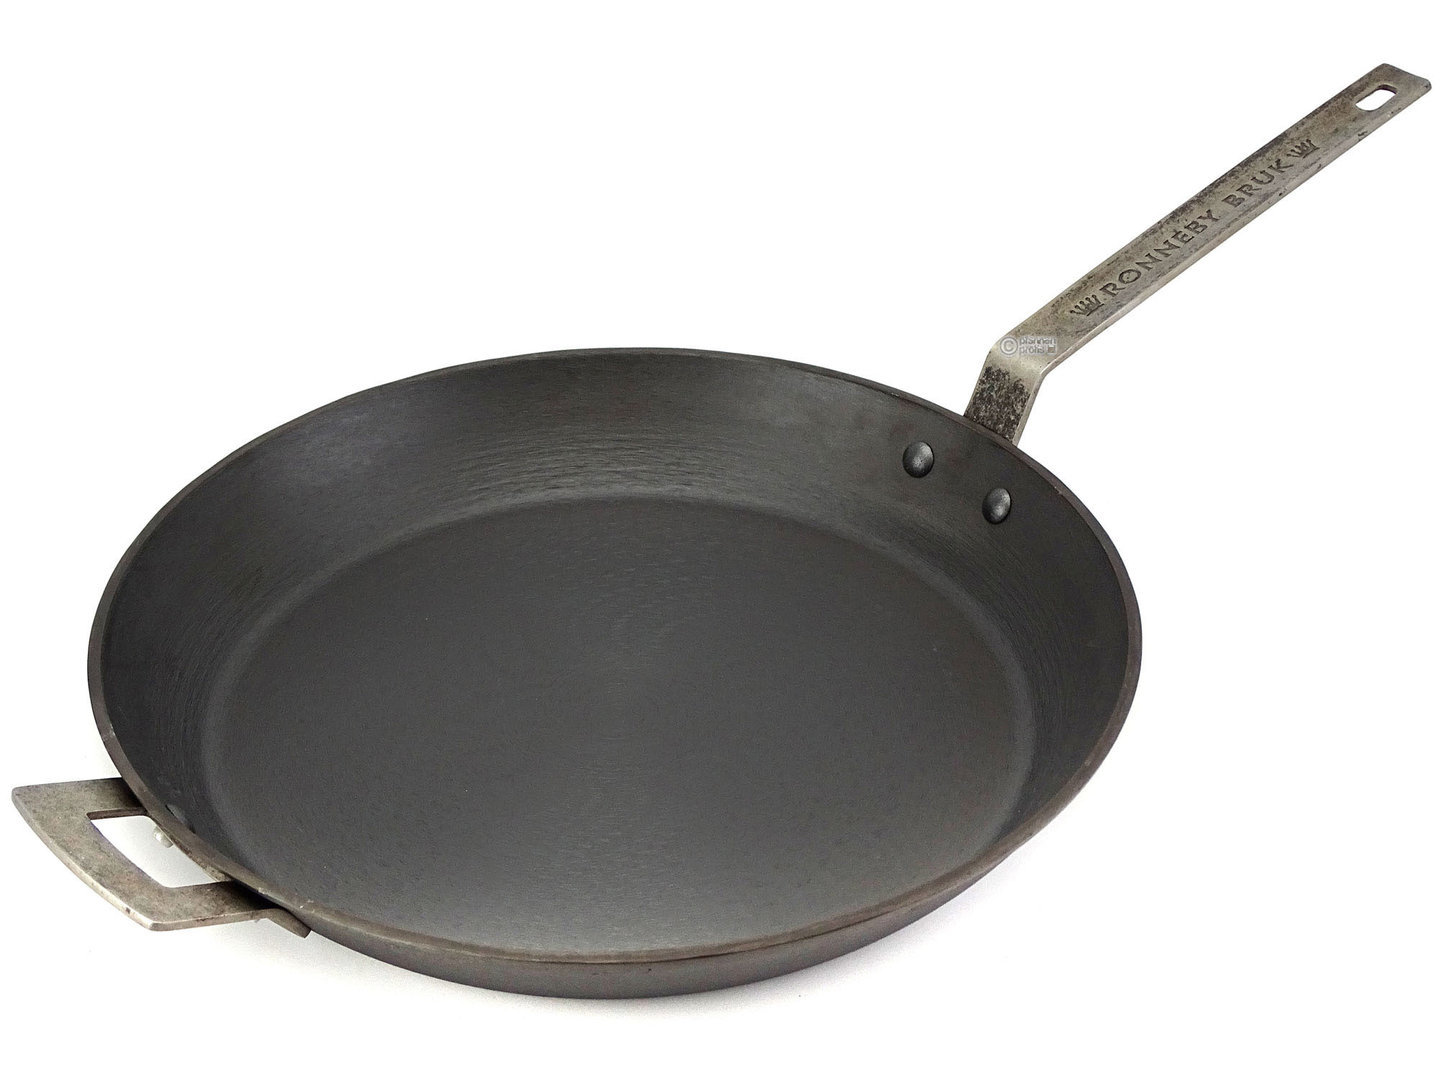 RONNEBY BRUK cast iron frypan ULTRA LIGHT PROFESSIONAL  36 cm pre-seasoned